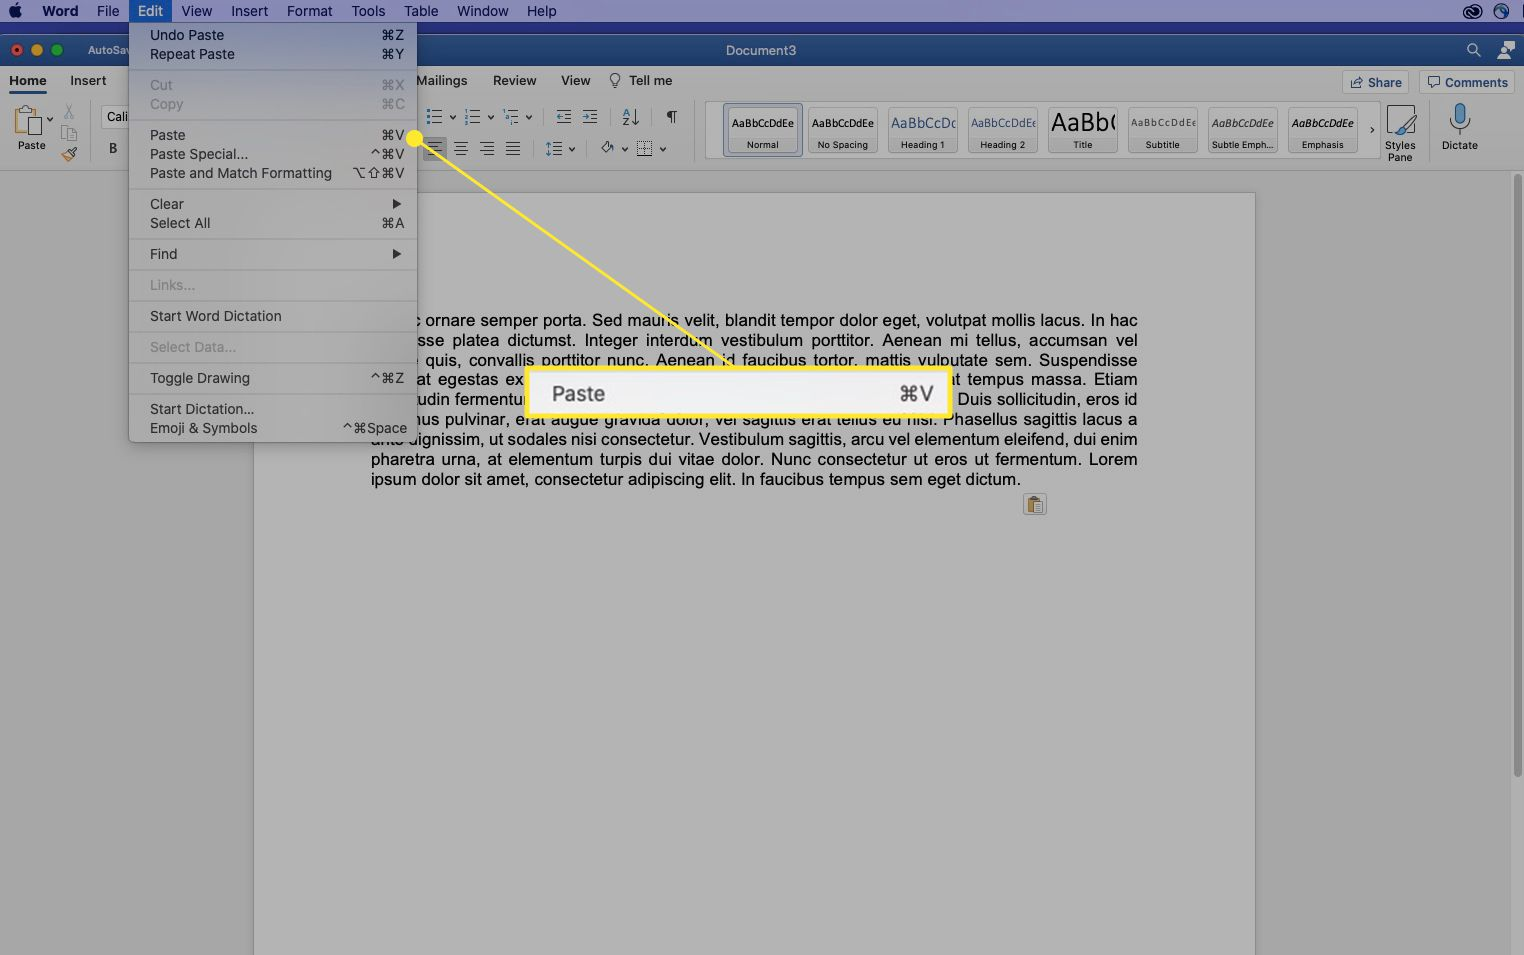 Word on a Mac with the Paste command highlighted